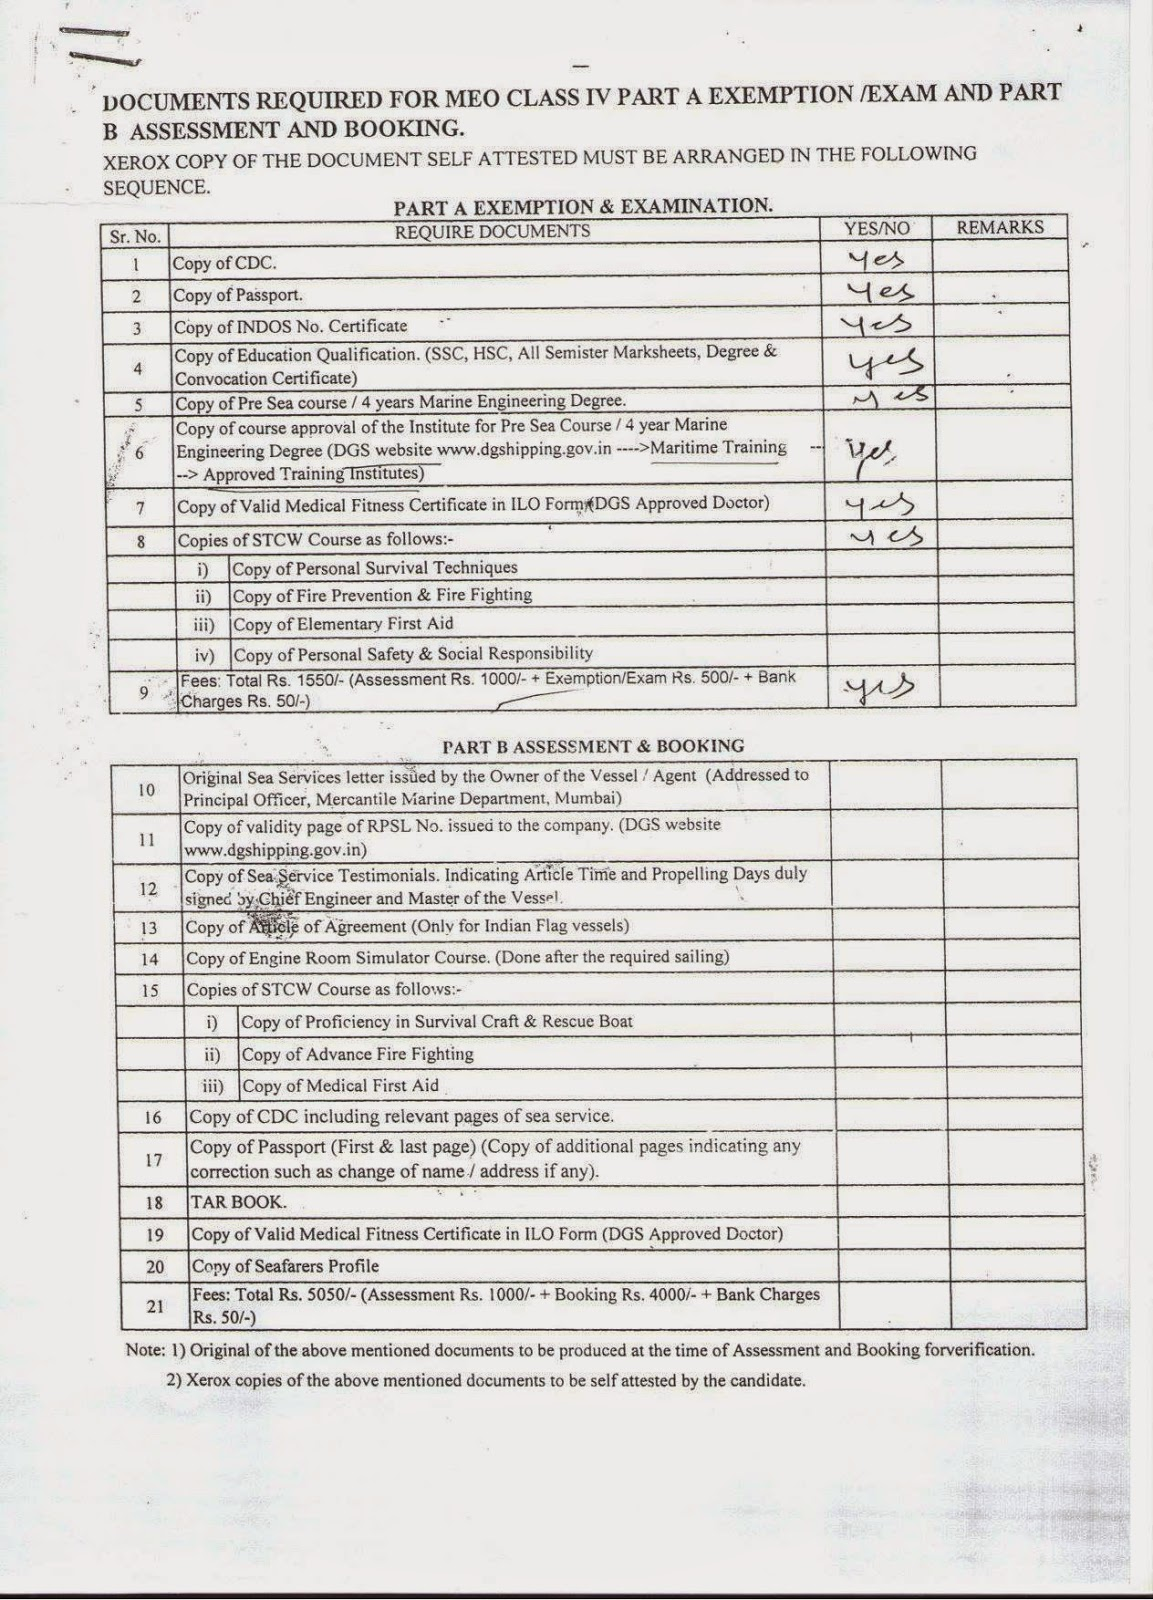 My life as a mariner class iv part a exemption in mumbai mmd for Documents checklist visa 600